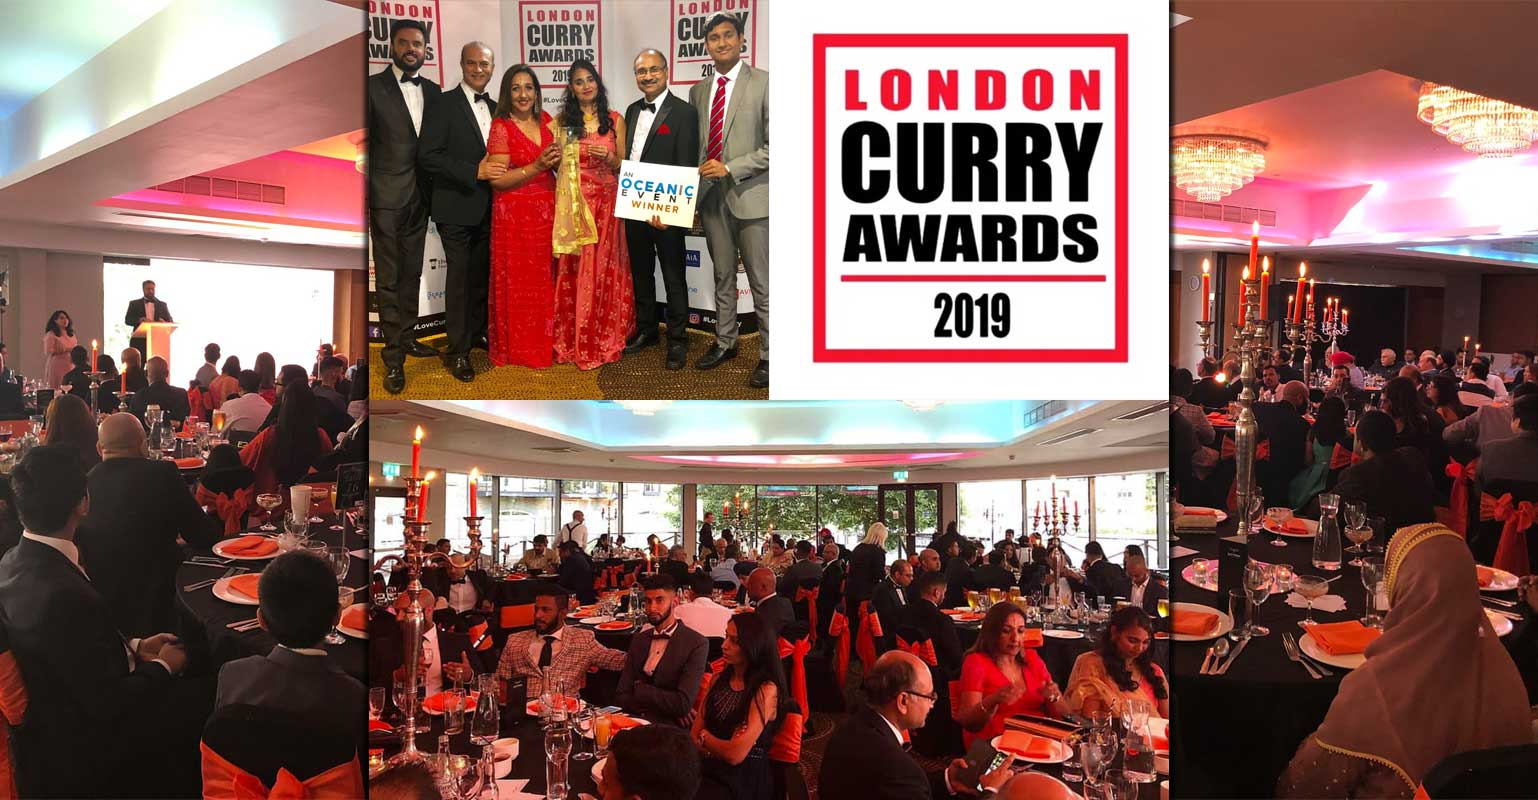 And The Winners Of The London Curry Awards 2019 Are